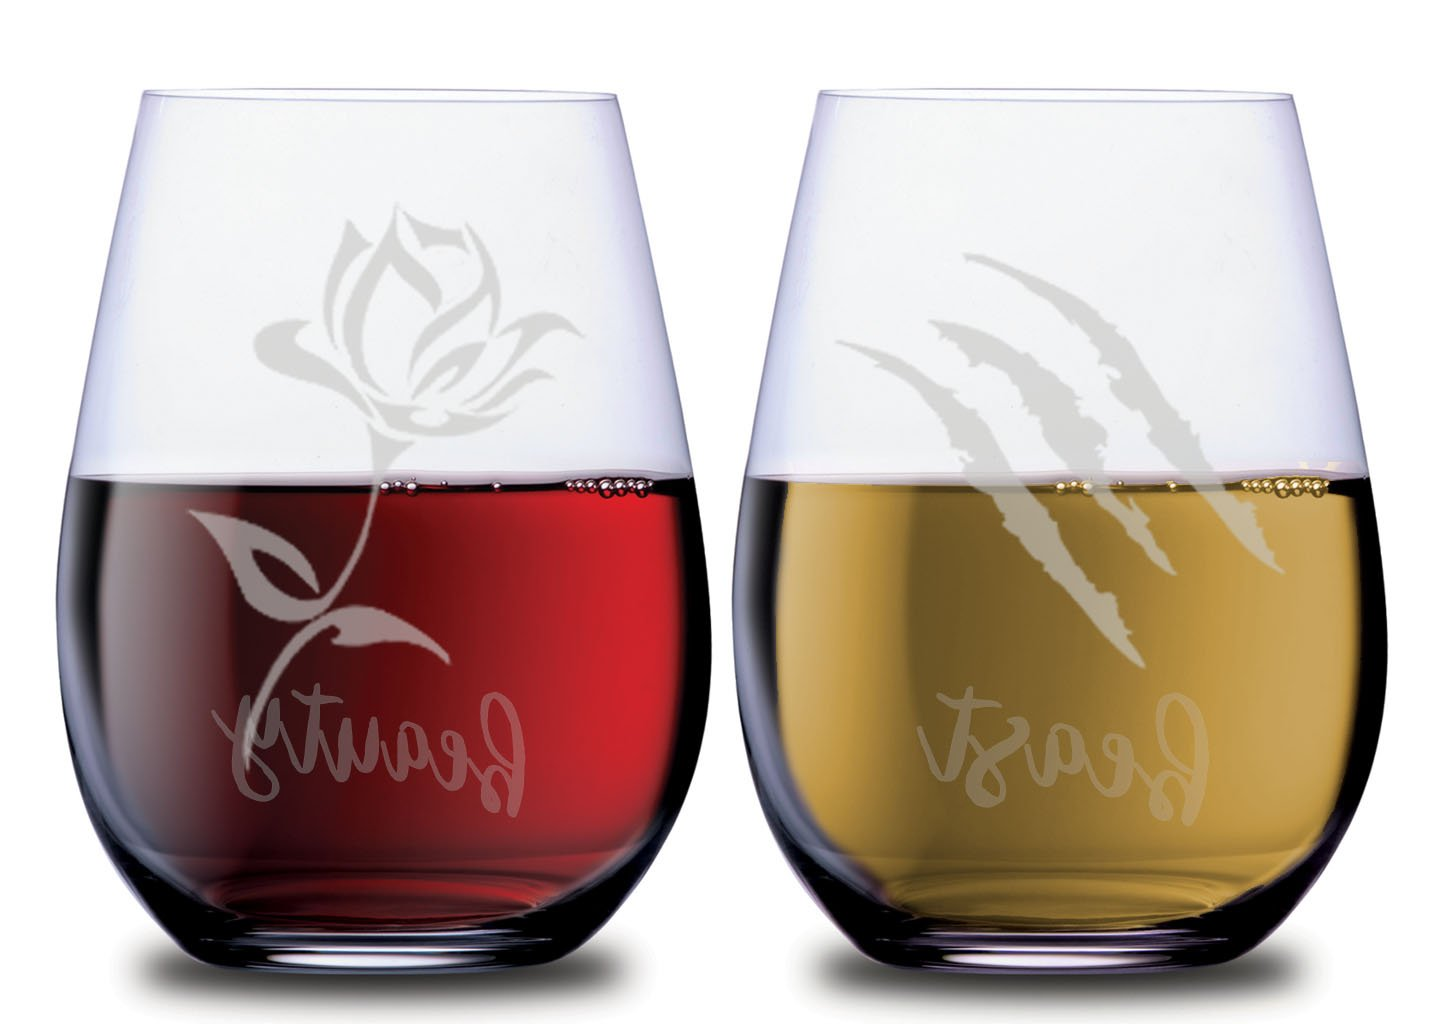 Beauty and Beast Stemless Couples Wine Glasses Set of 2 with Princess Belle Rose & Beast Scratch Funny Dishwasher Safe 18 oz by Smoochies | His and Hers Anniversary, Home Date Night Wife Husband Gift